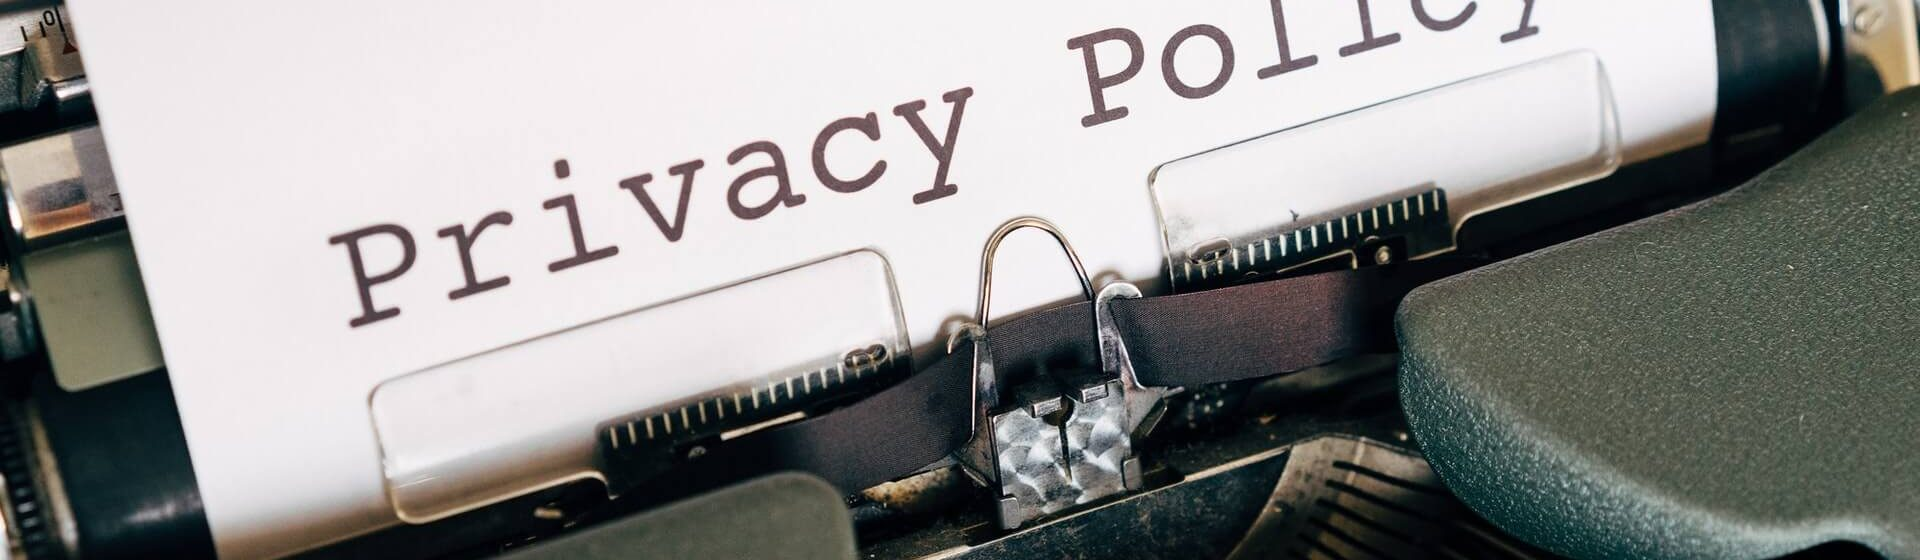 How to create and use a Privacy Policy template